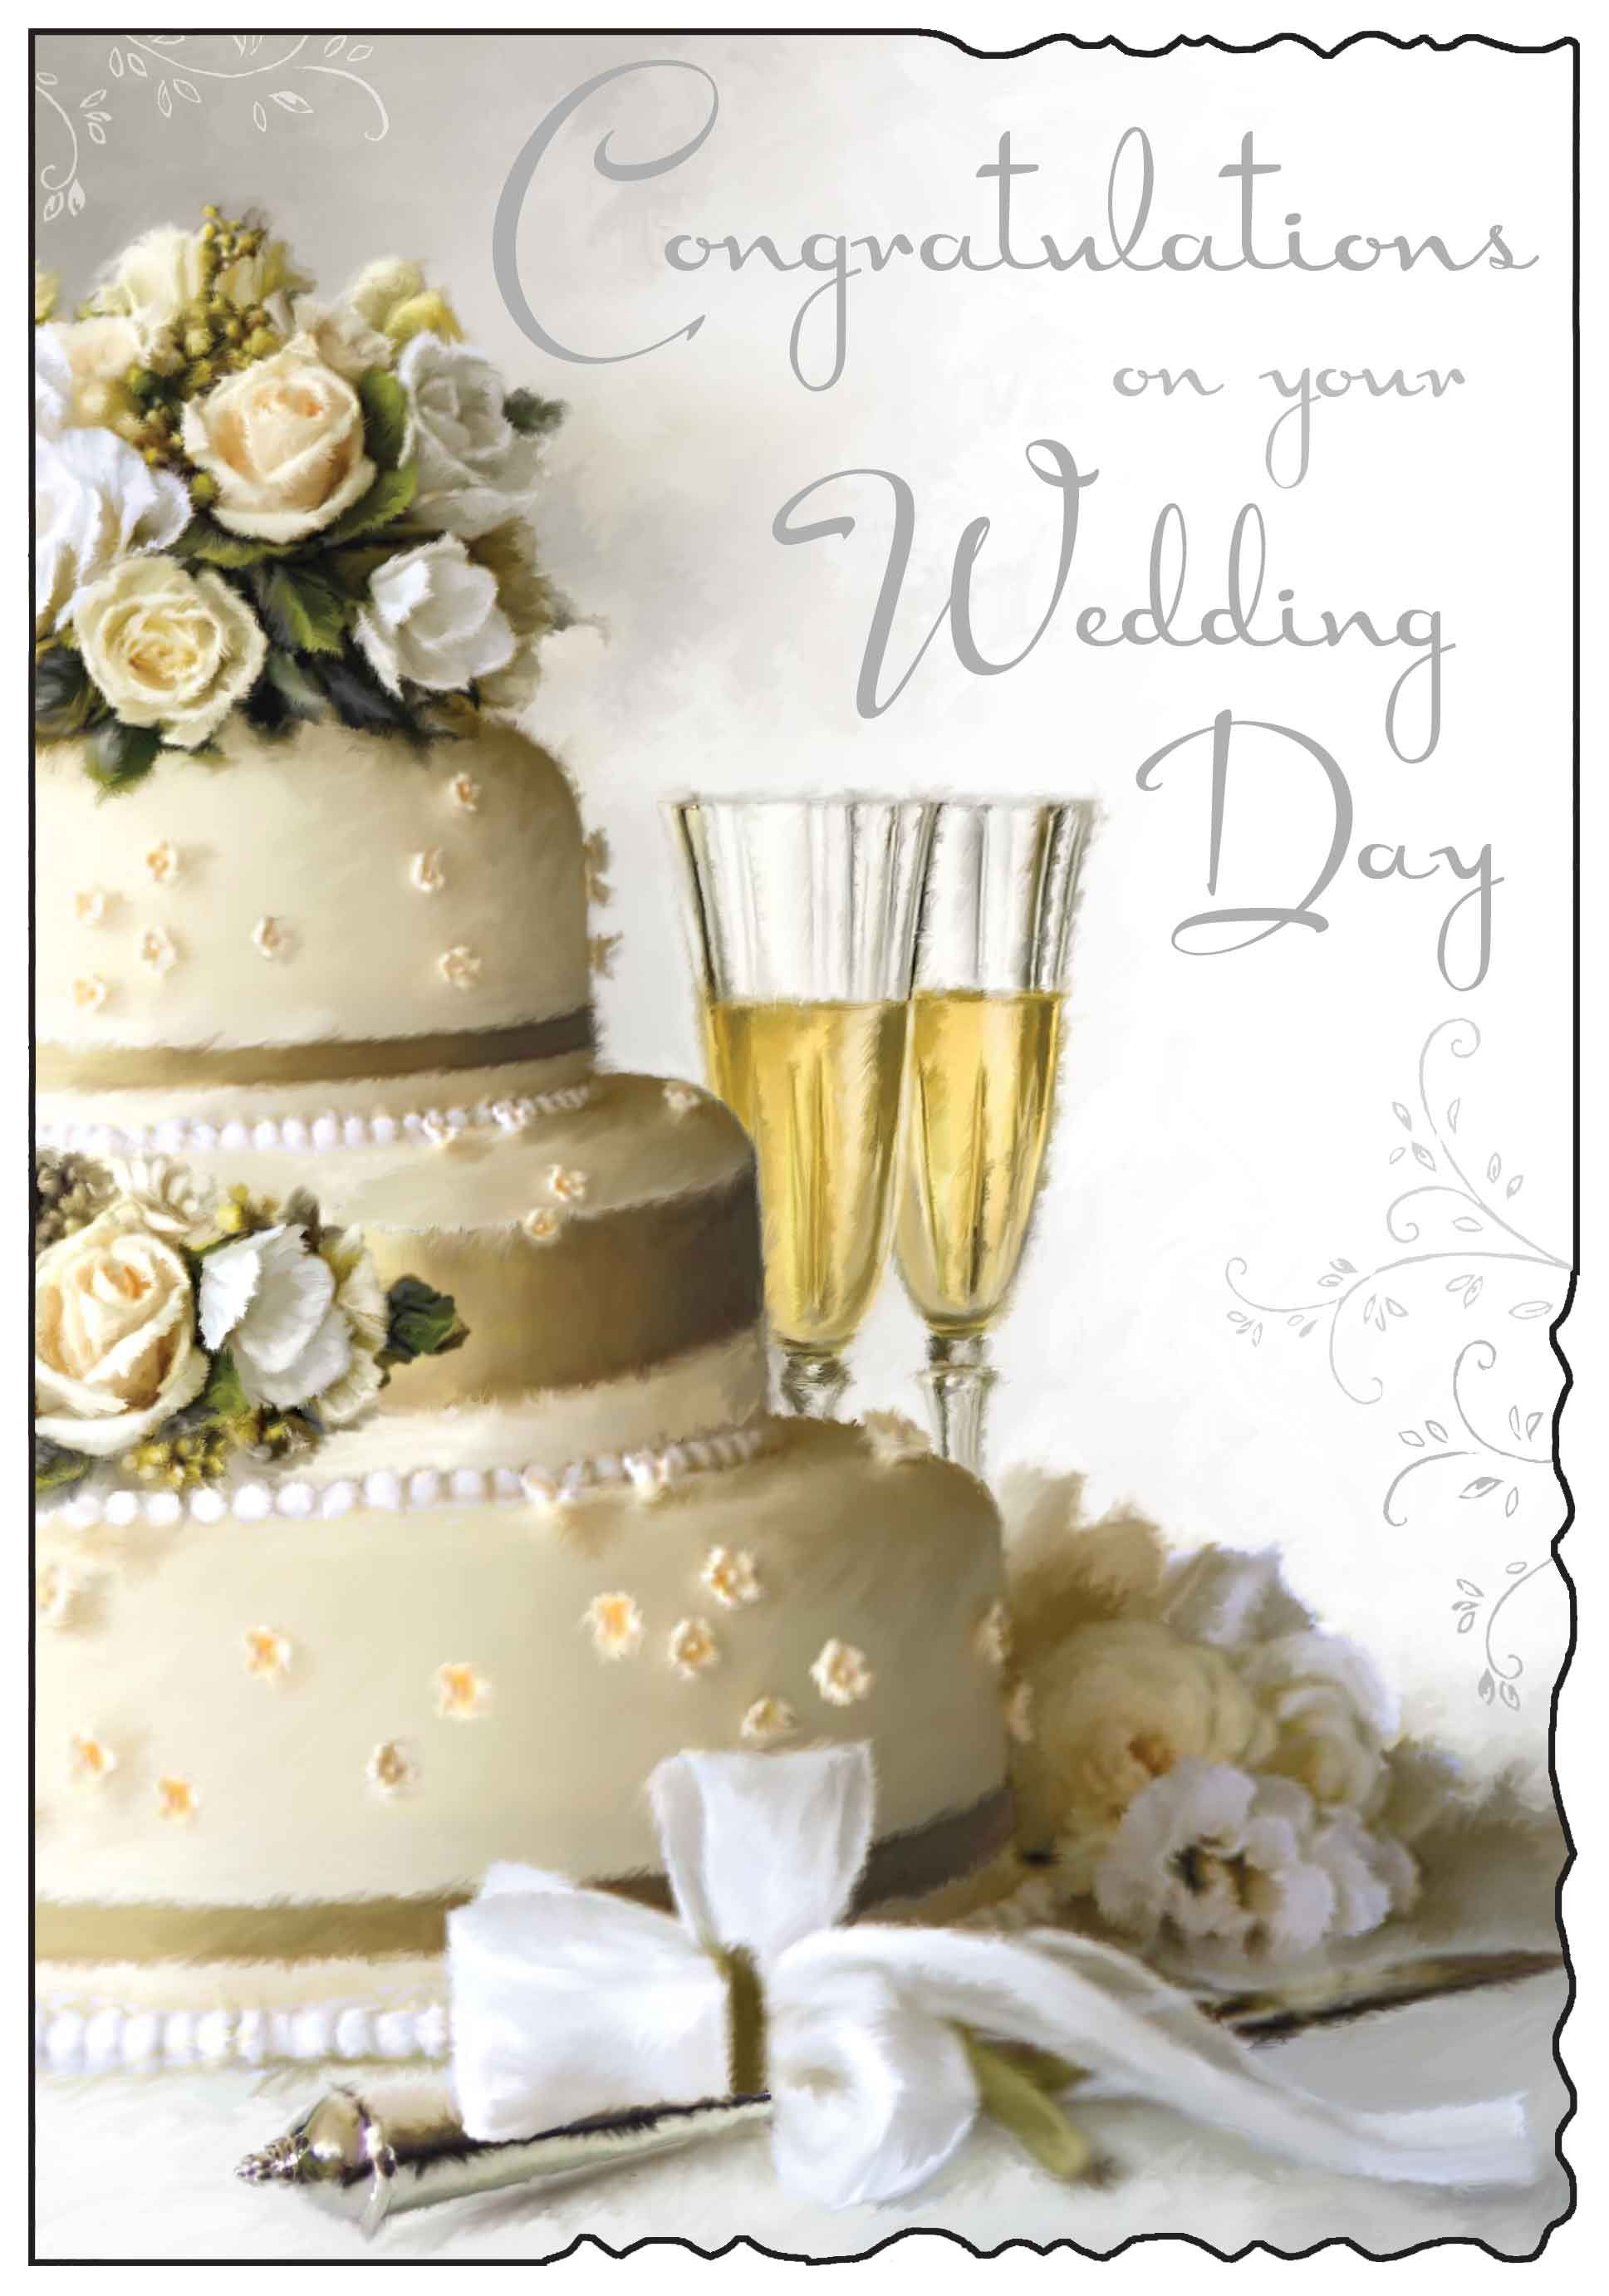 Congratulations on your wedding day card. http://www ...